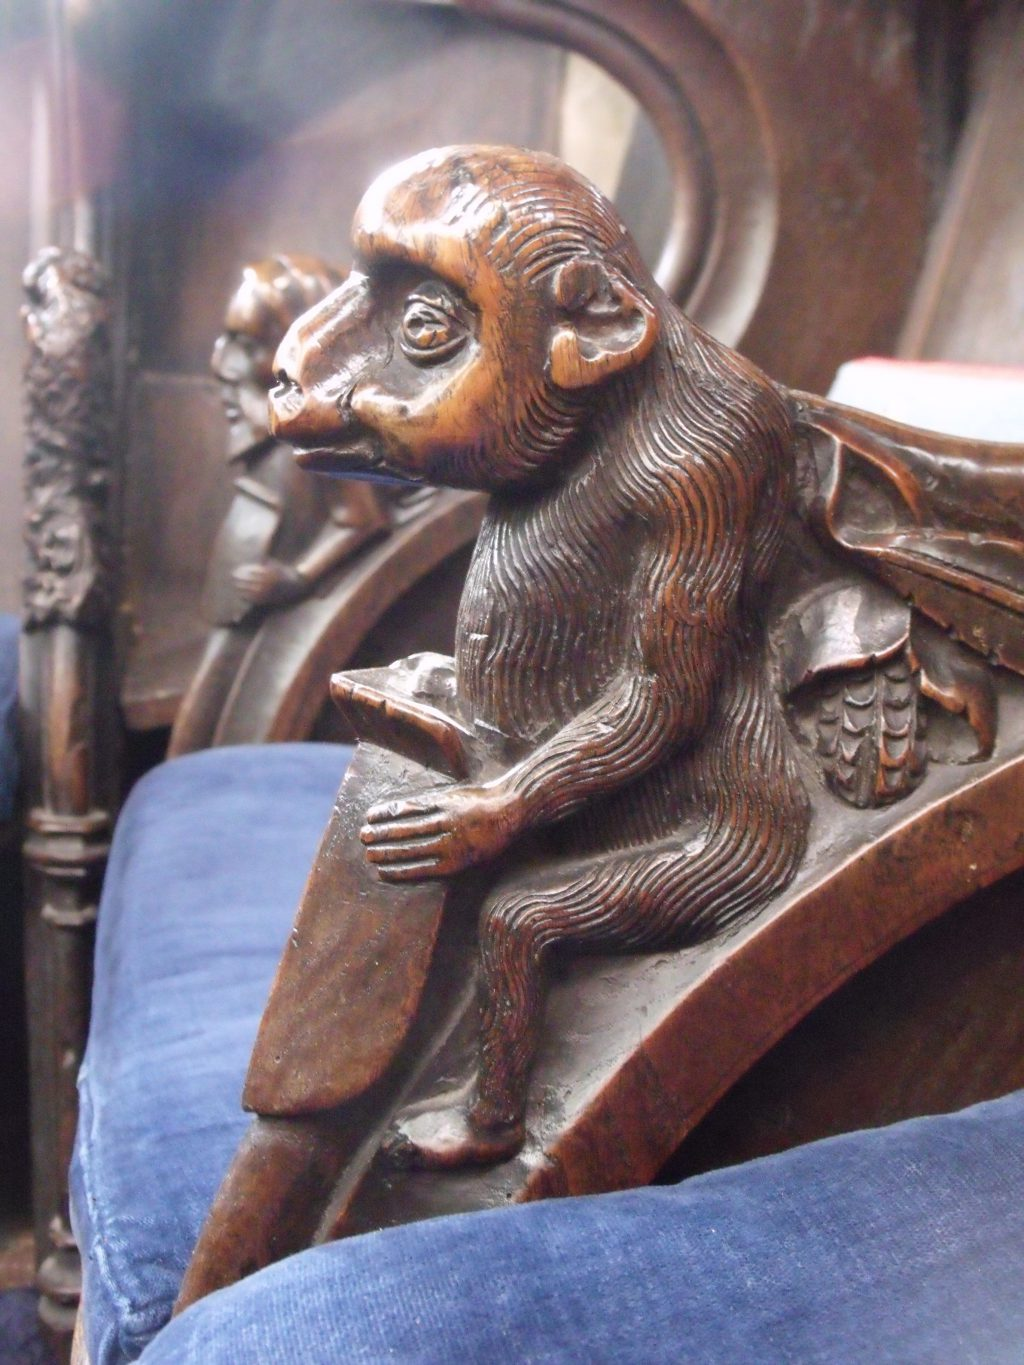 What strange creatures have been carved on the choir seats at Southwold! This one looks like a monkey.